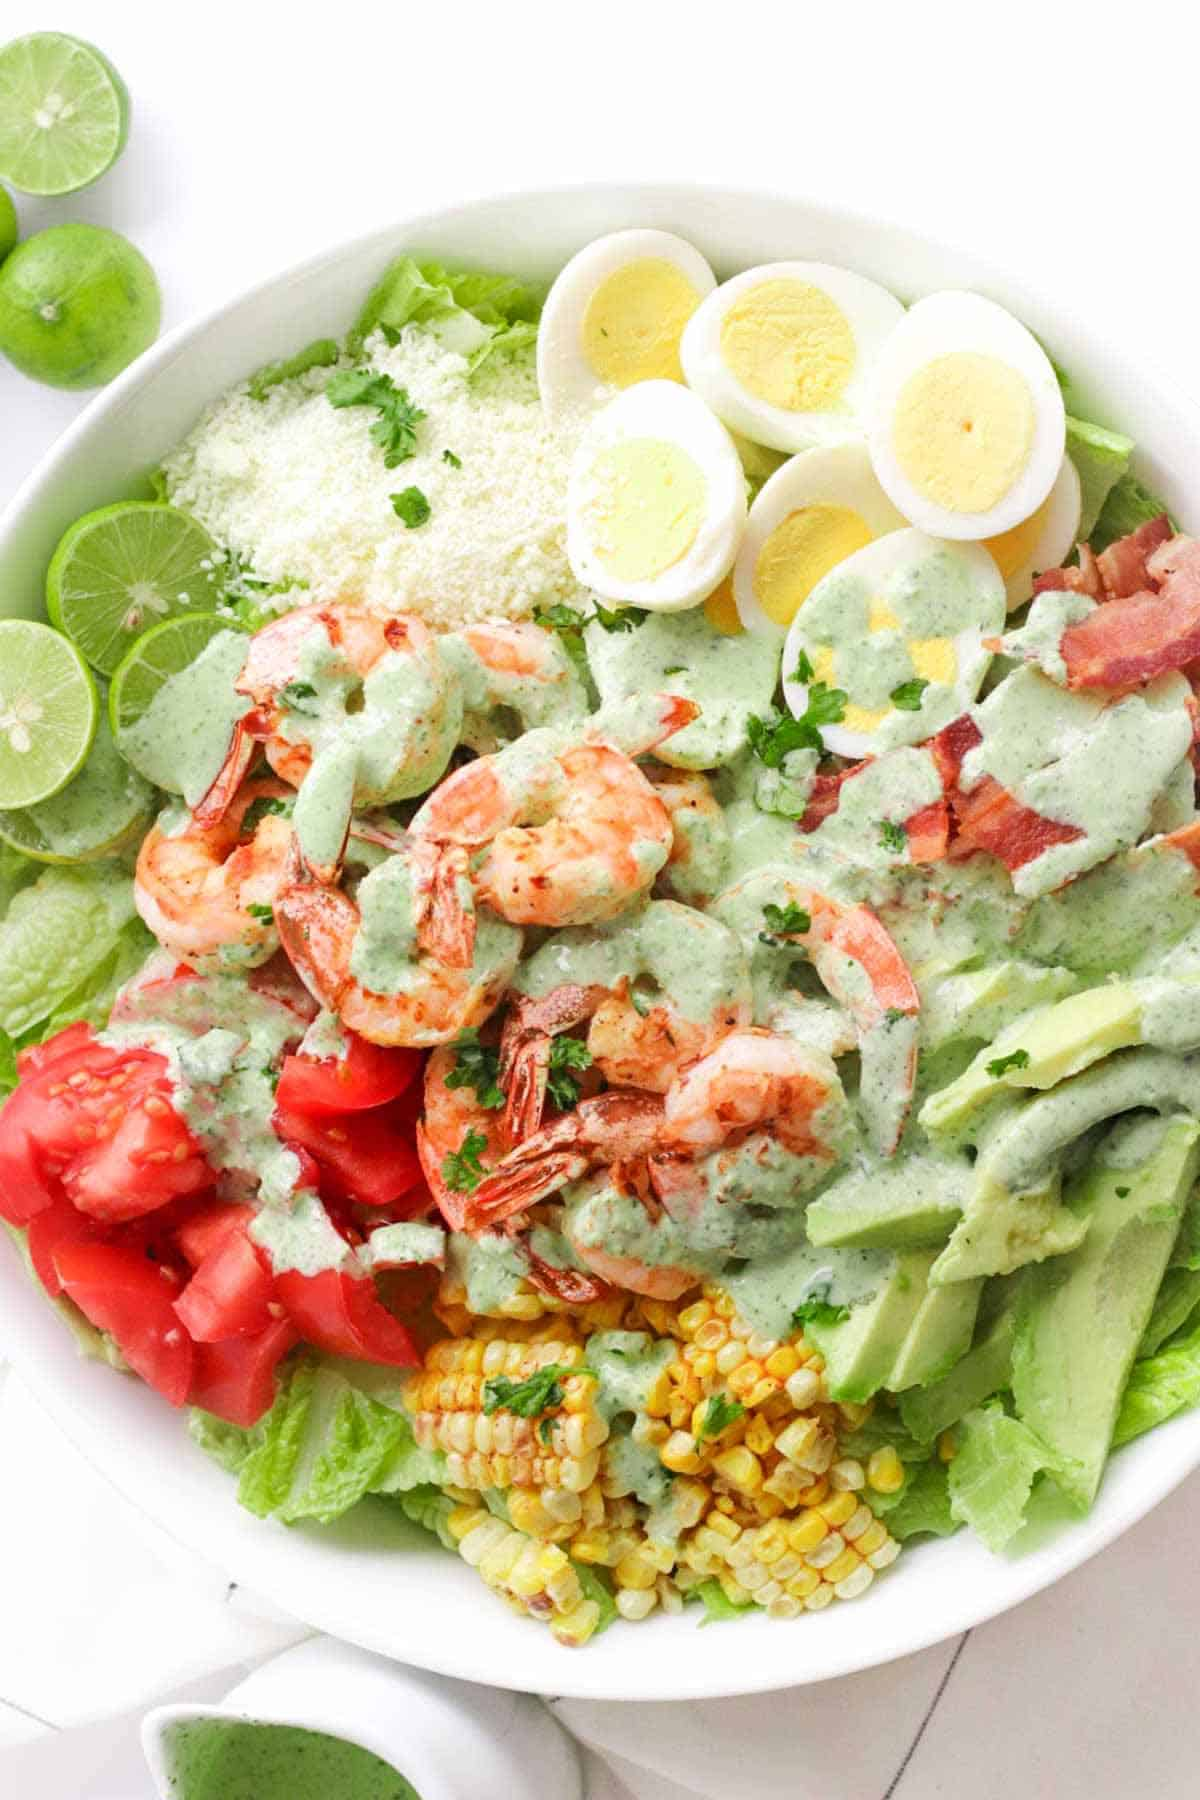 Shrimp Cobb Salad with hard boiled eggs, bacon, limes, tomatoes, avocado, cotija cheese, grilled corn, and cilantro lime dressing in a white serving bowl